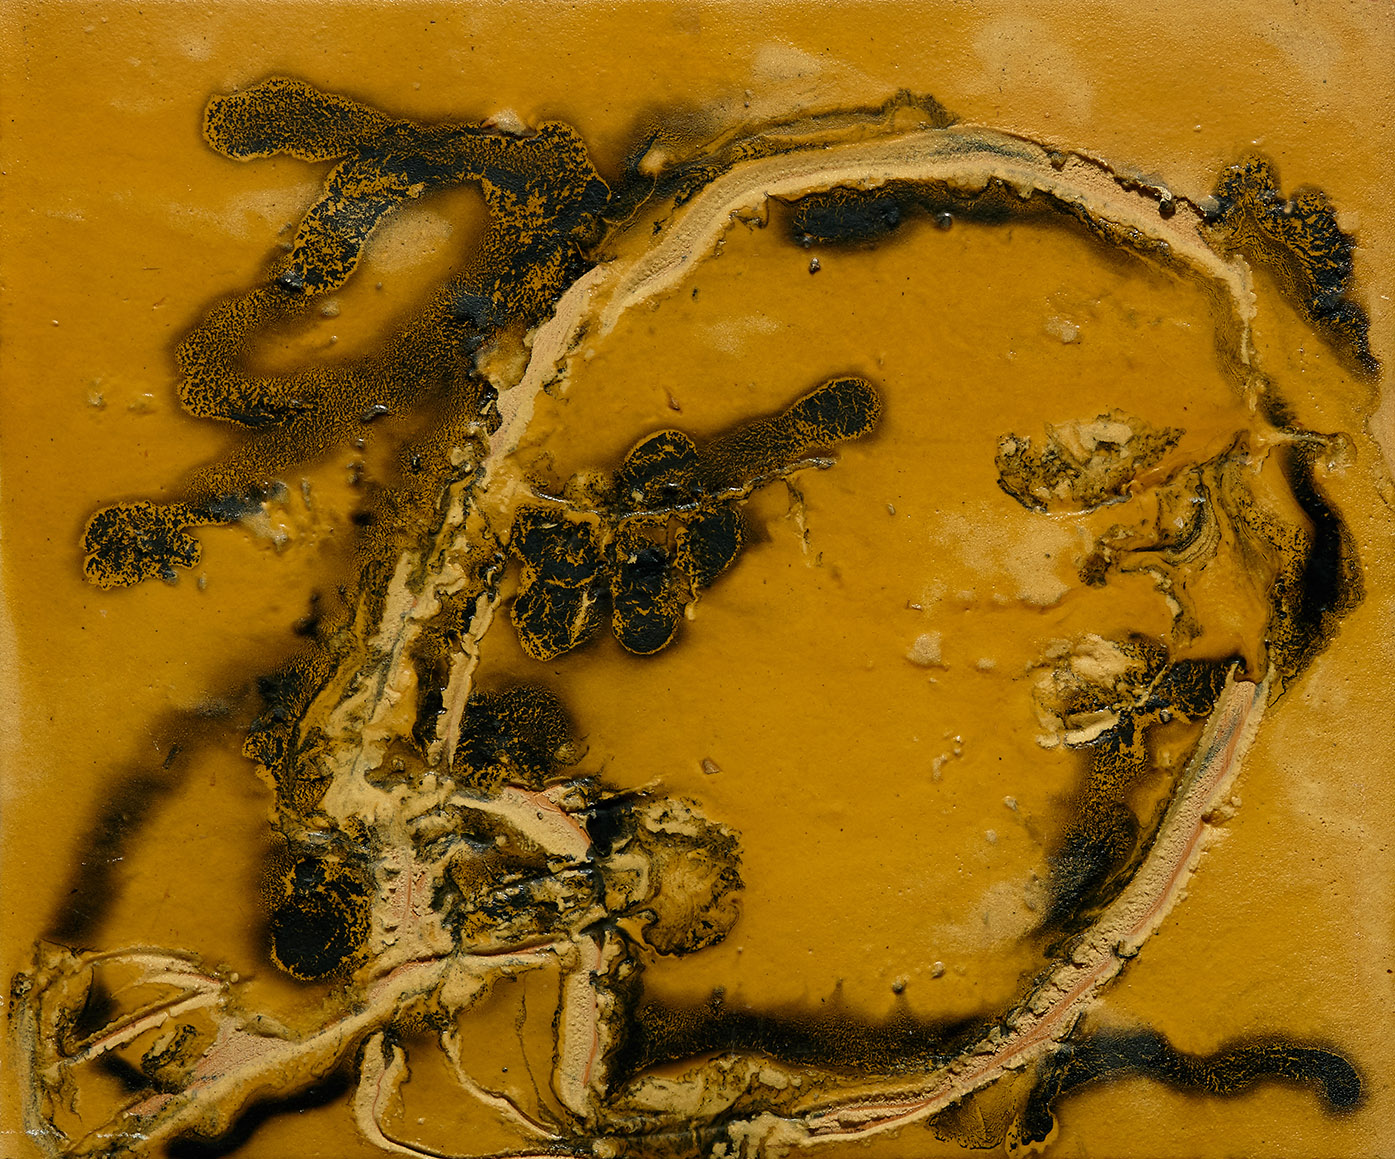 Antoni-Tàpies-Fumador-1987_th